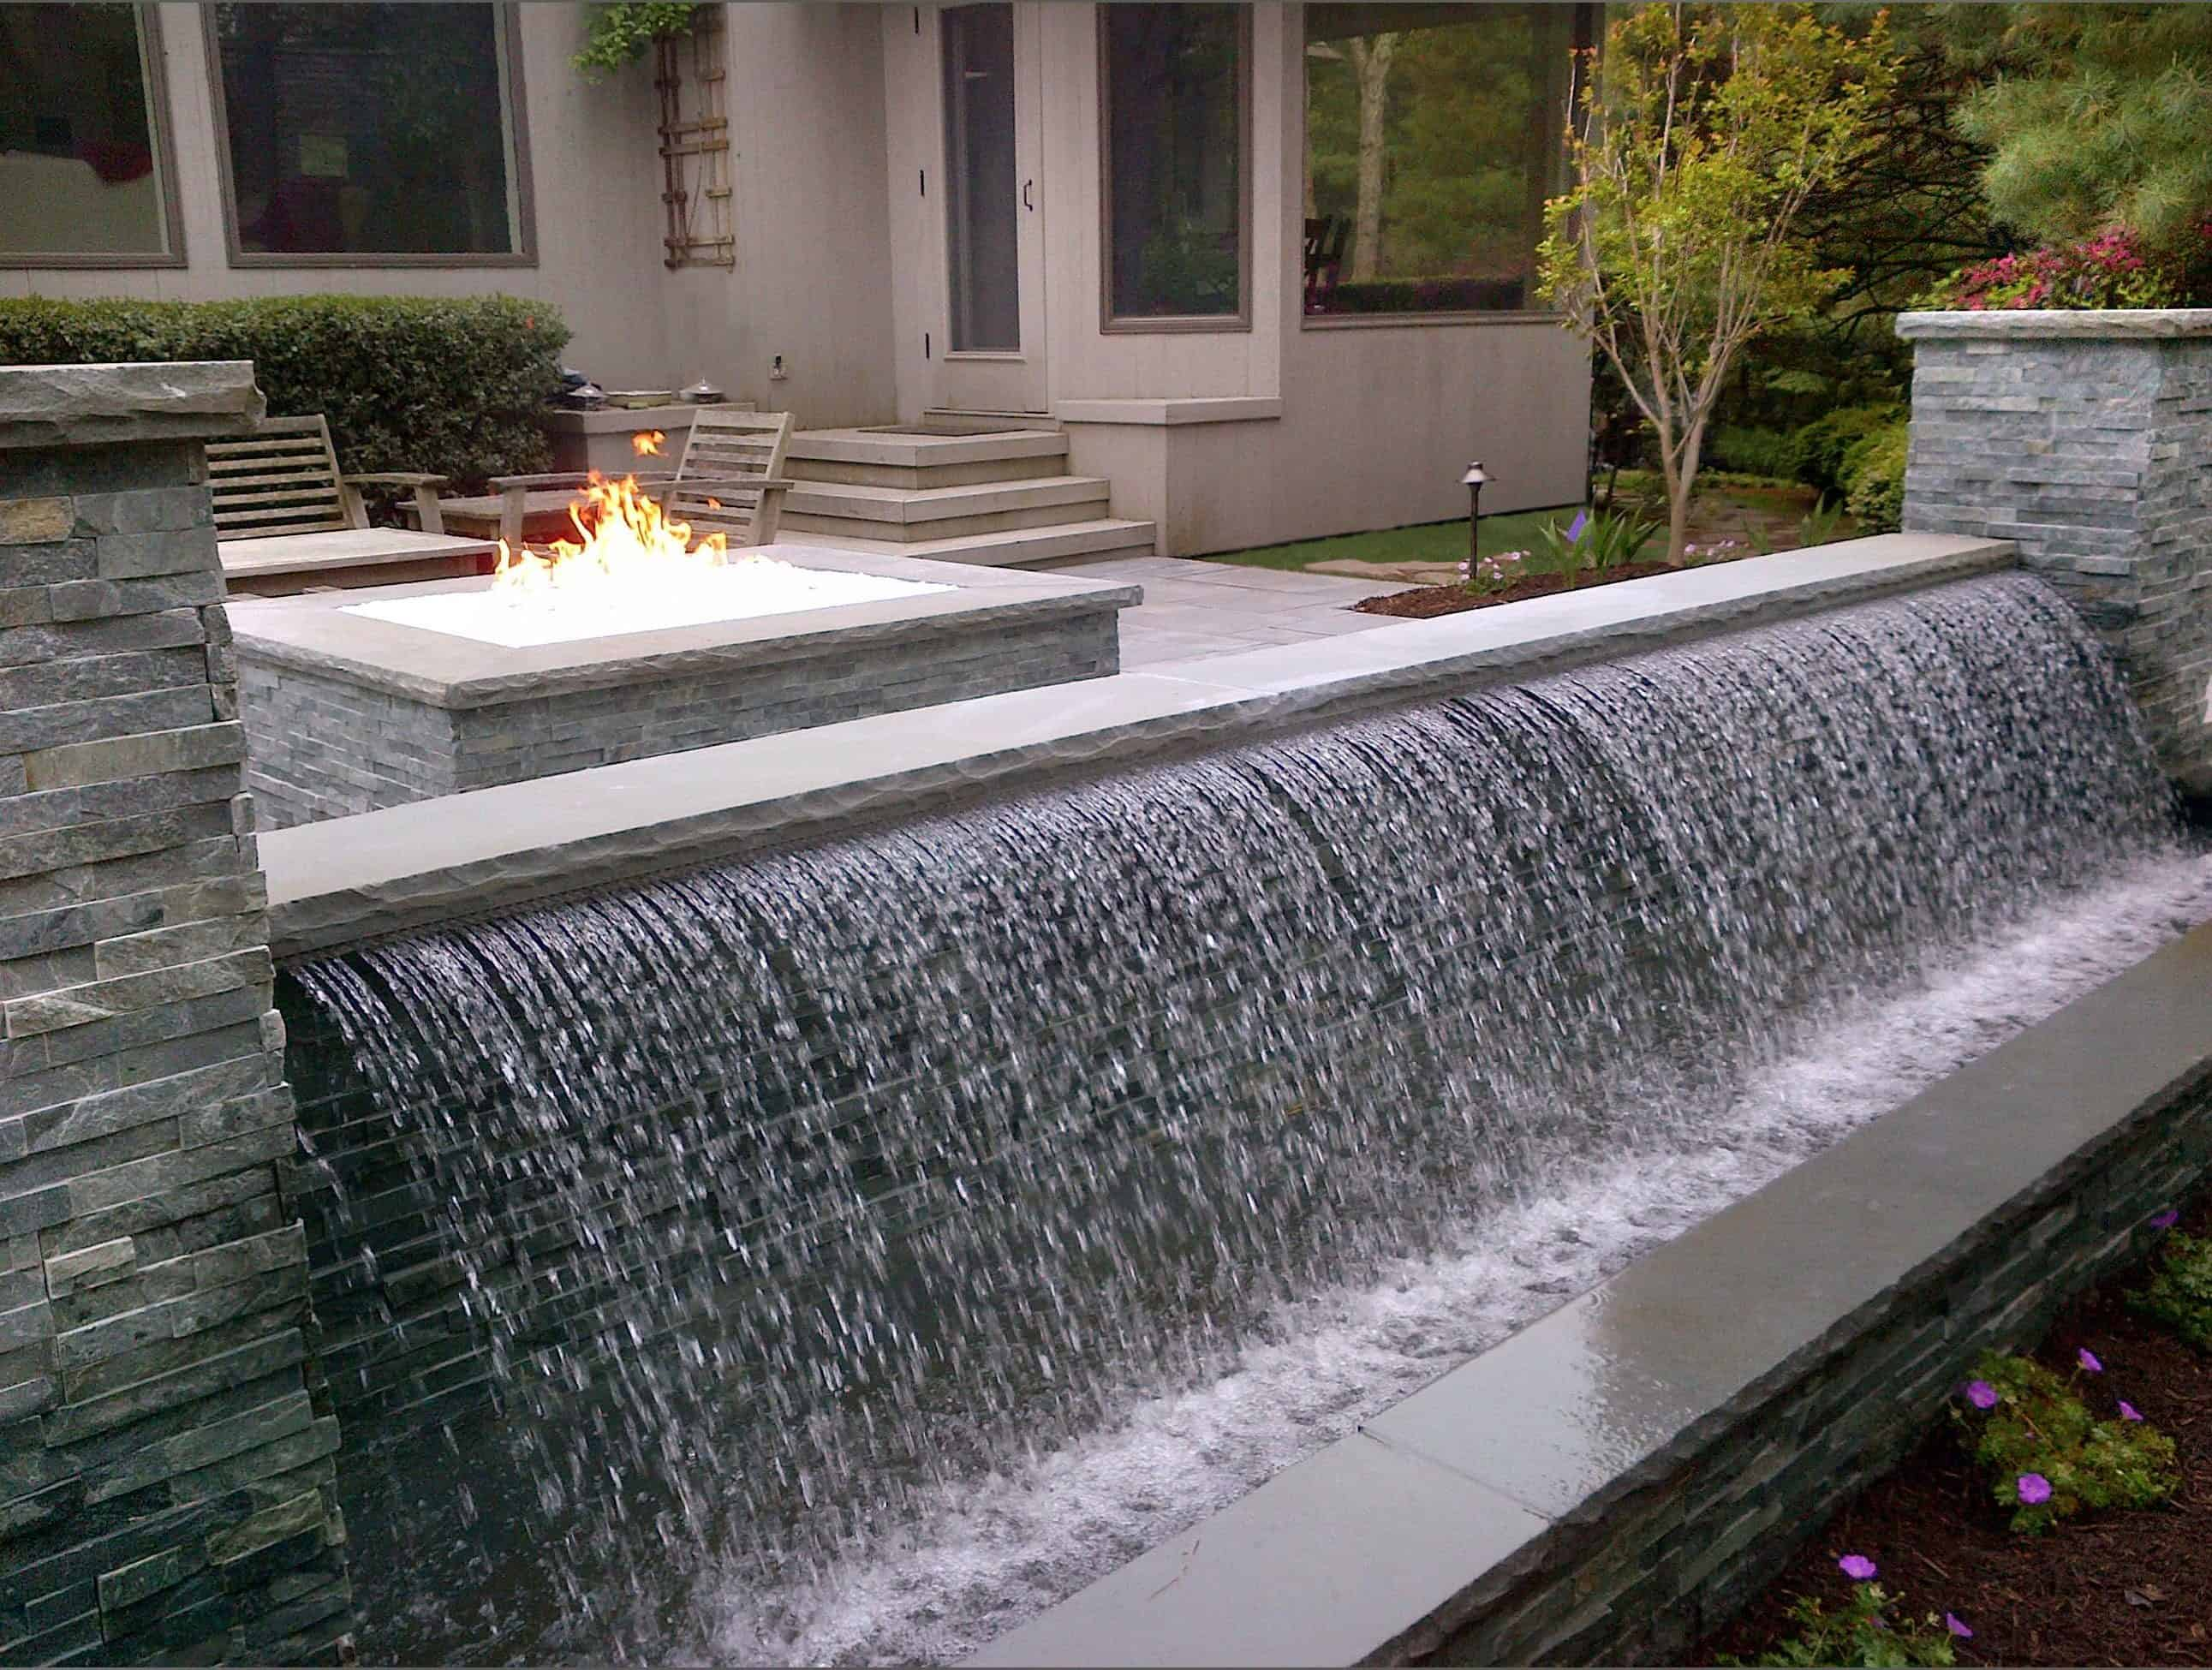 12' Sheer Descent water feature with Gunite basin - East Hampton, Long Island NY